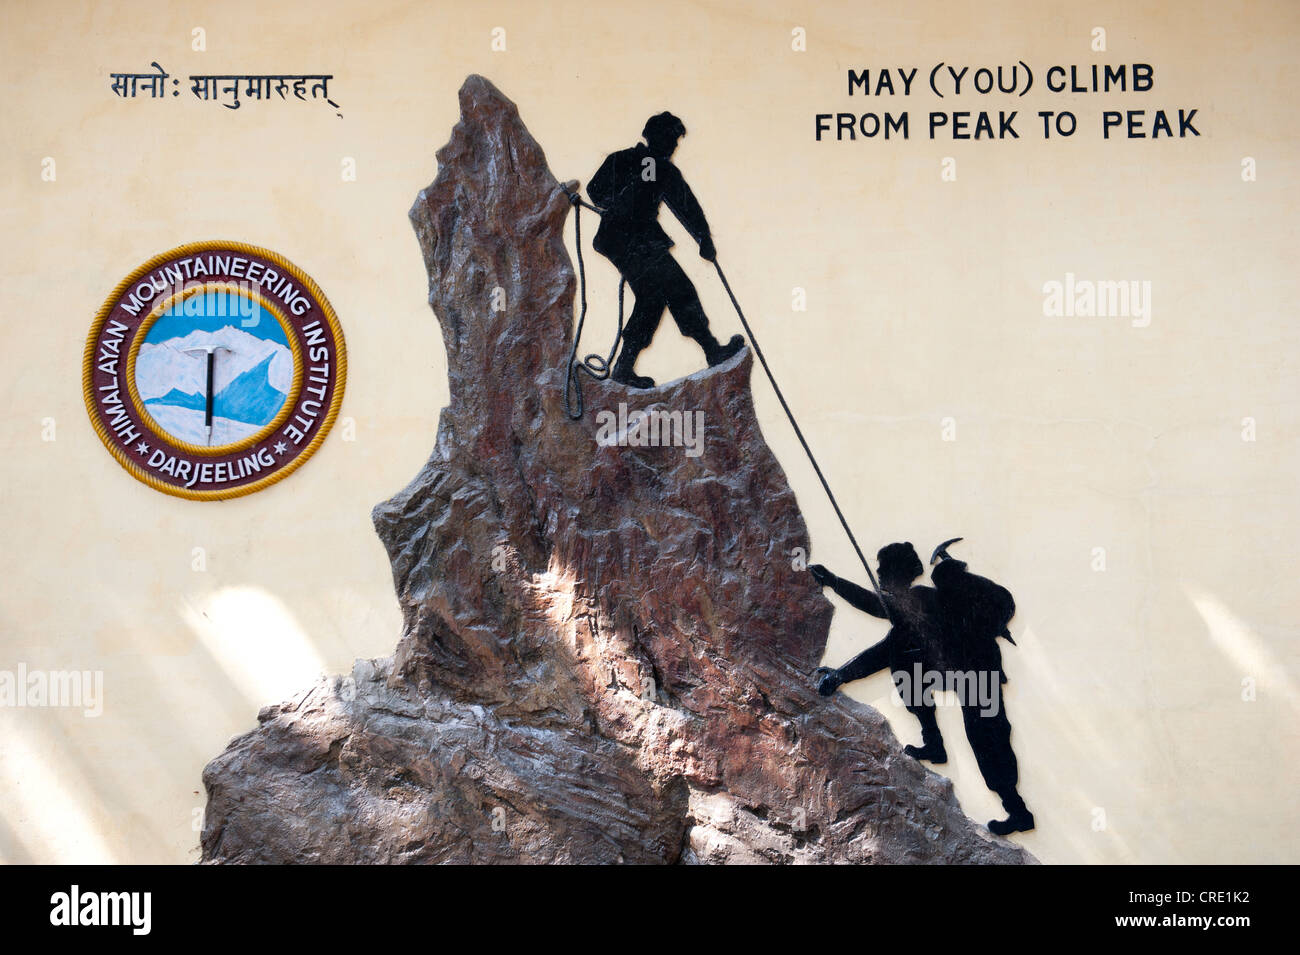 Illustration, two mountaineers on a rope, Himalayan Mountaineering Institute, Darjeeling, West Bengal, Lower Himalayan - Stock Image